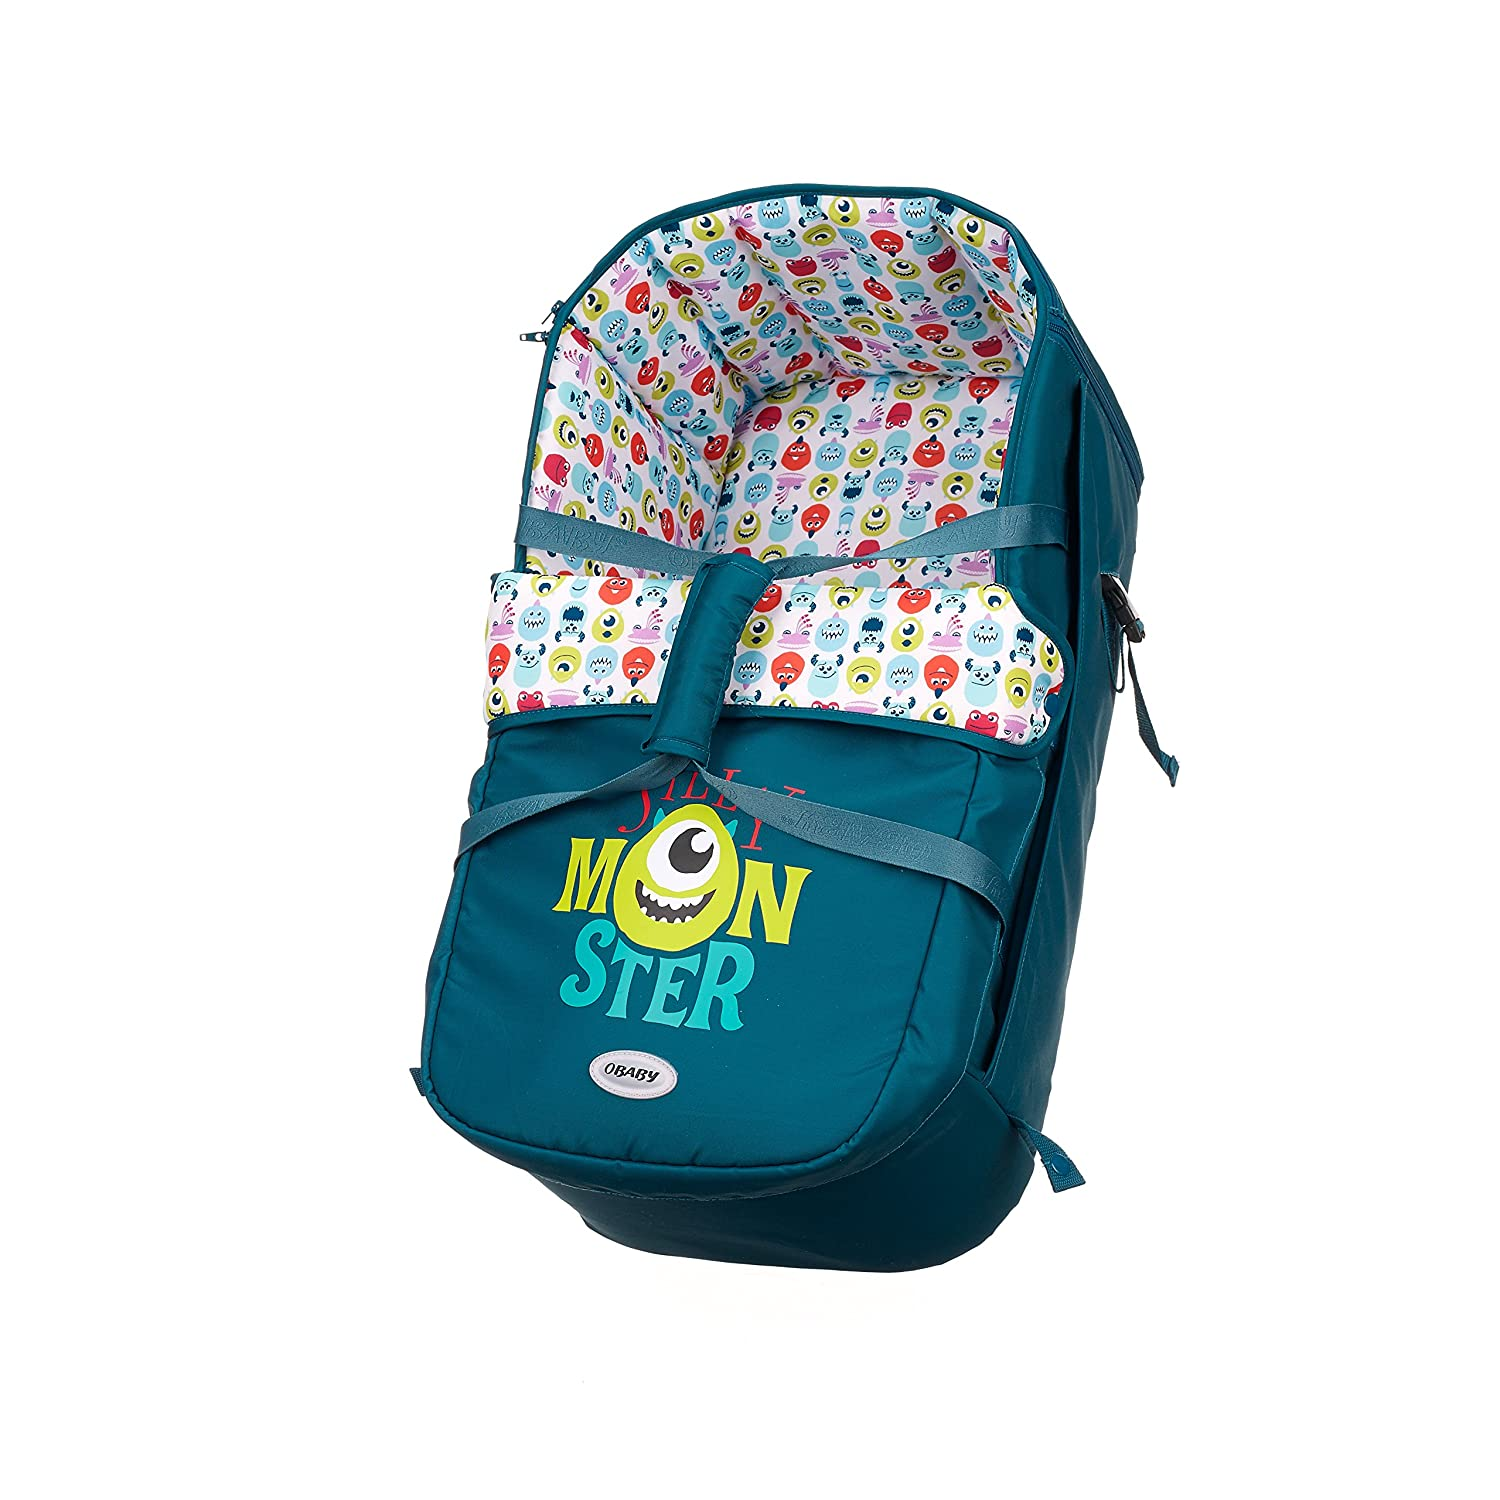 Disney Carrycot - Monsters Inc. 10DB0910